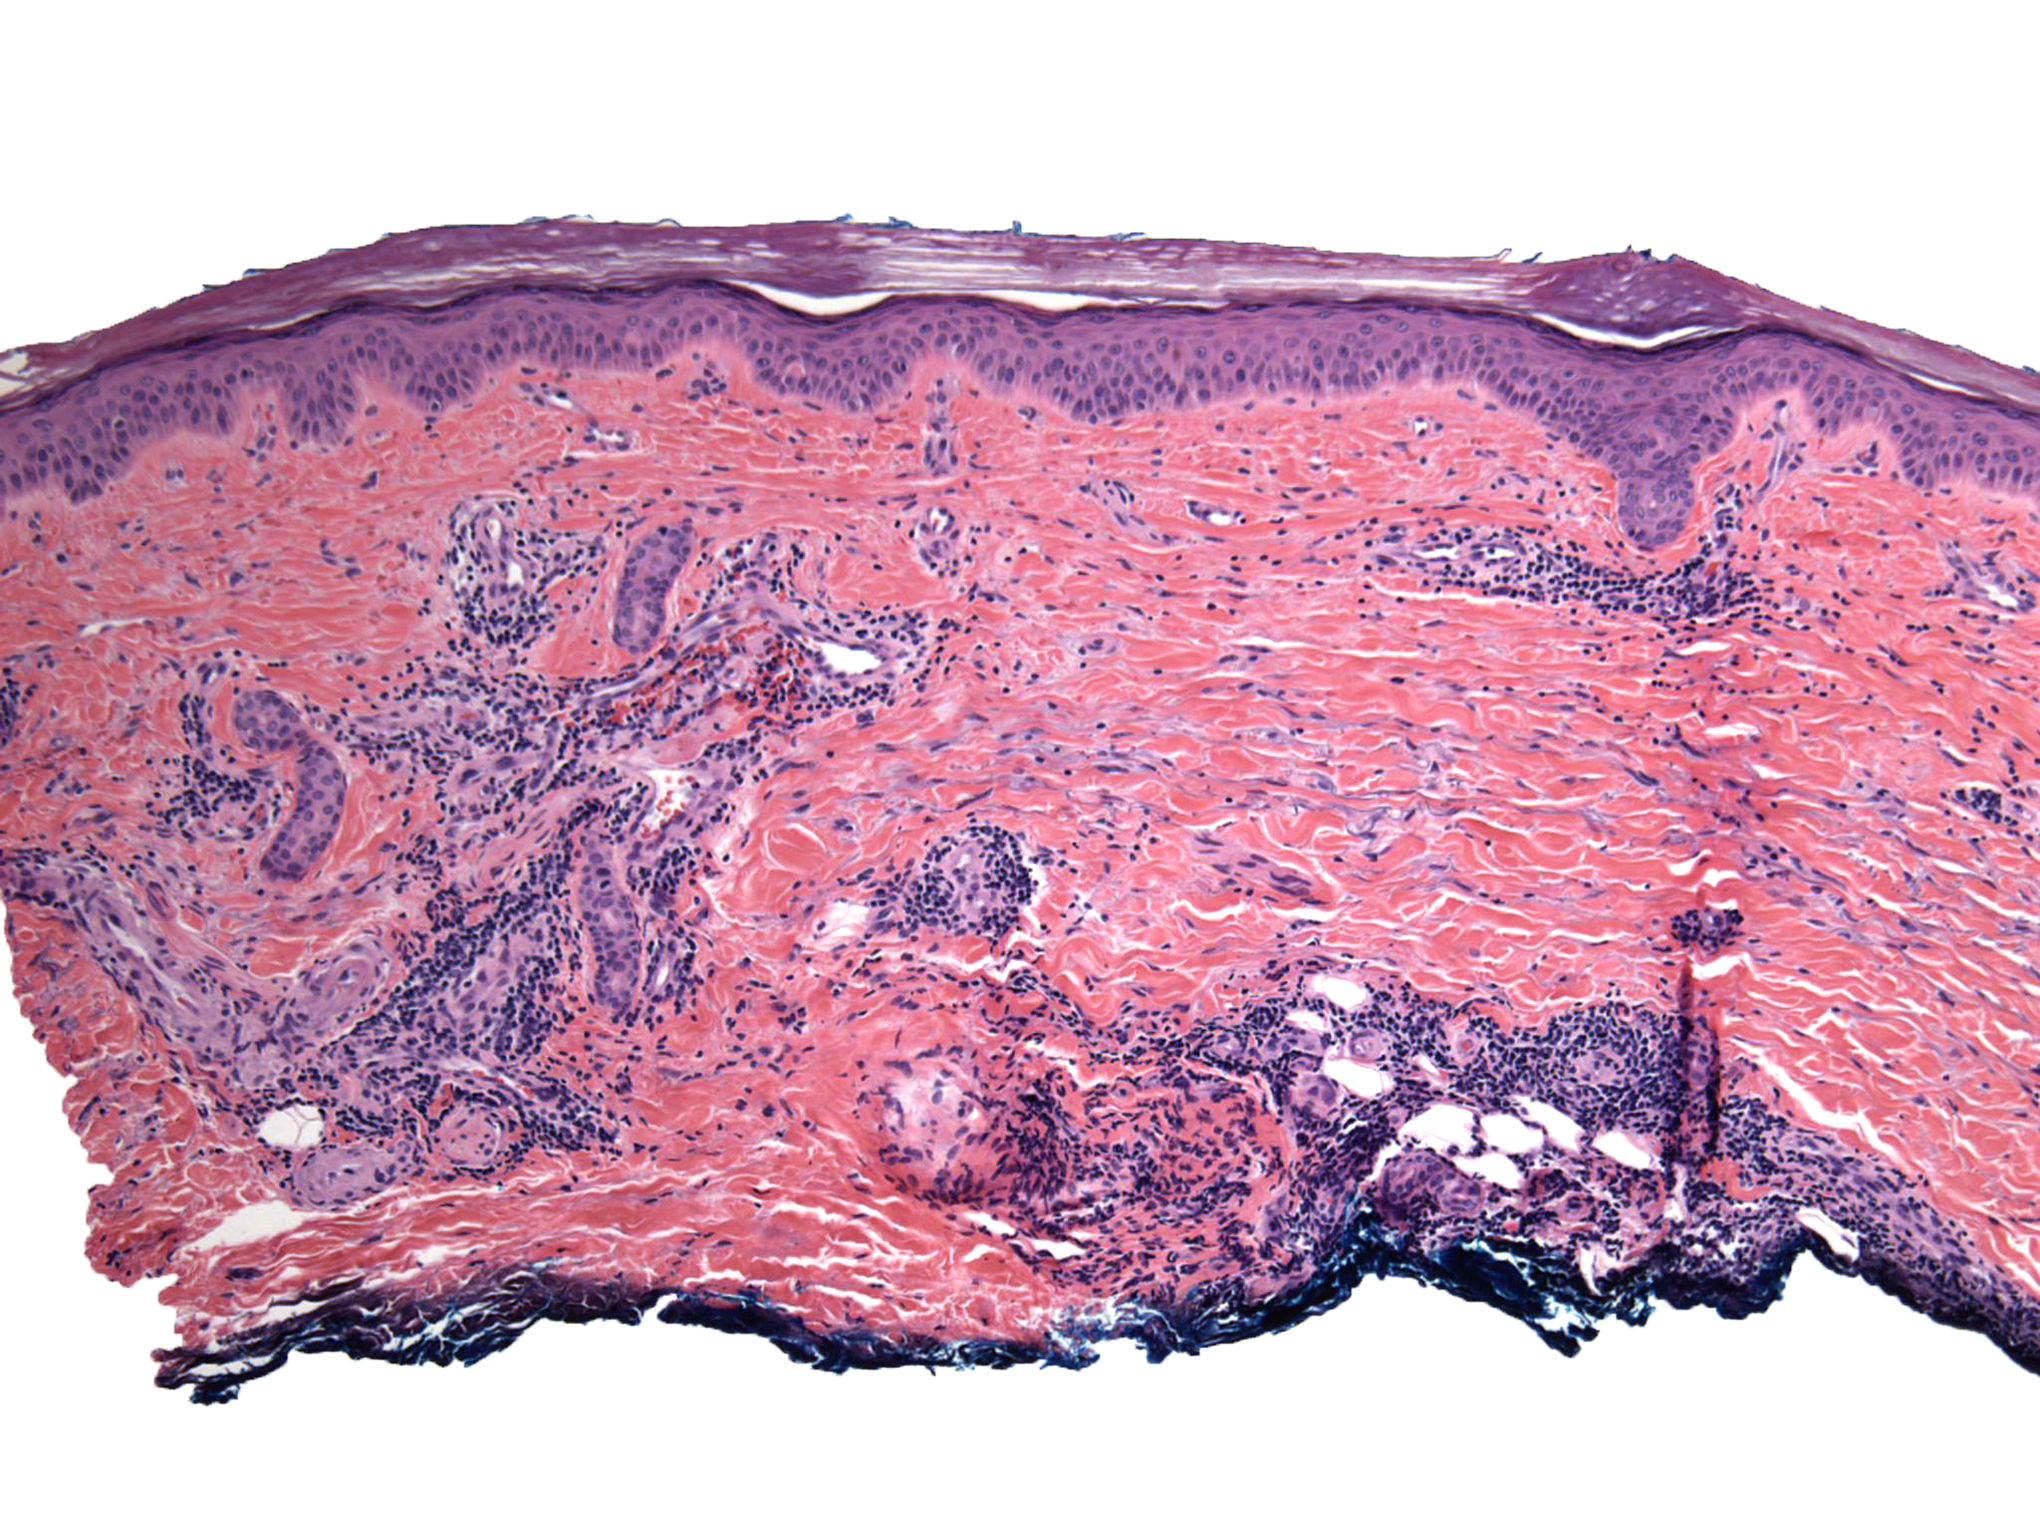 Image for derm manifestations of covid-19 in vmx news